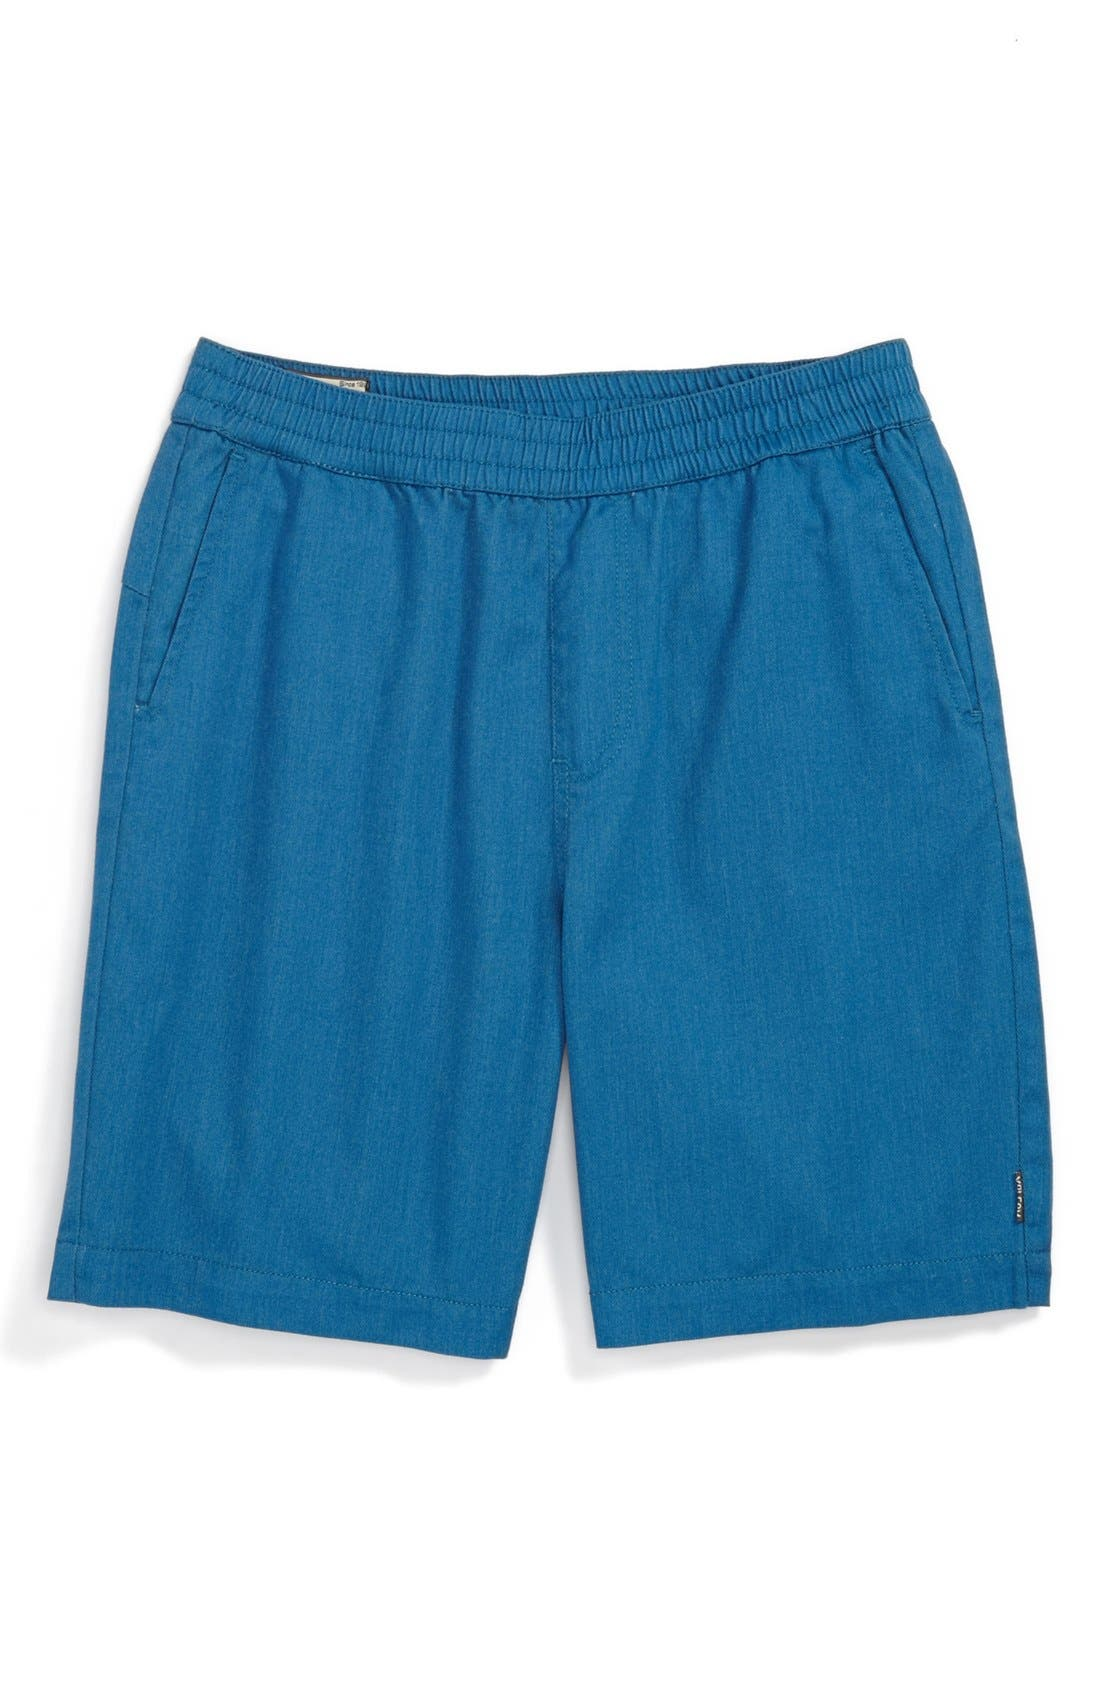 Alternate Image 1 Selected - Volcom Twill Shorts (Big Boys)